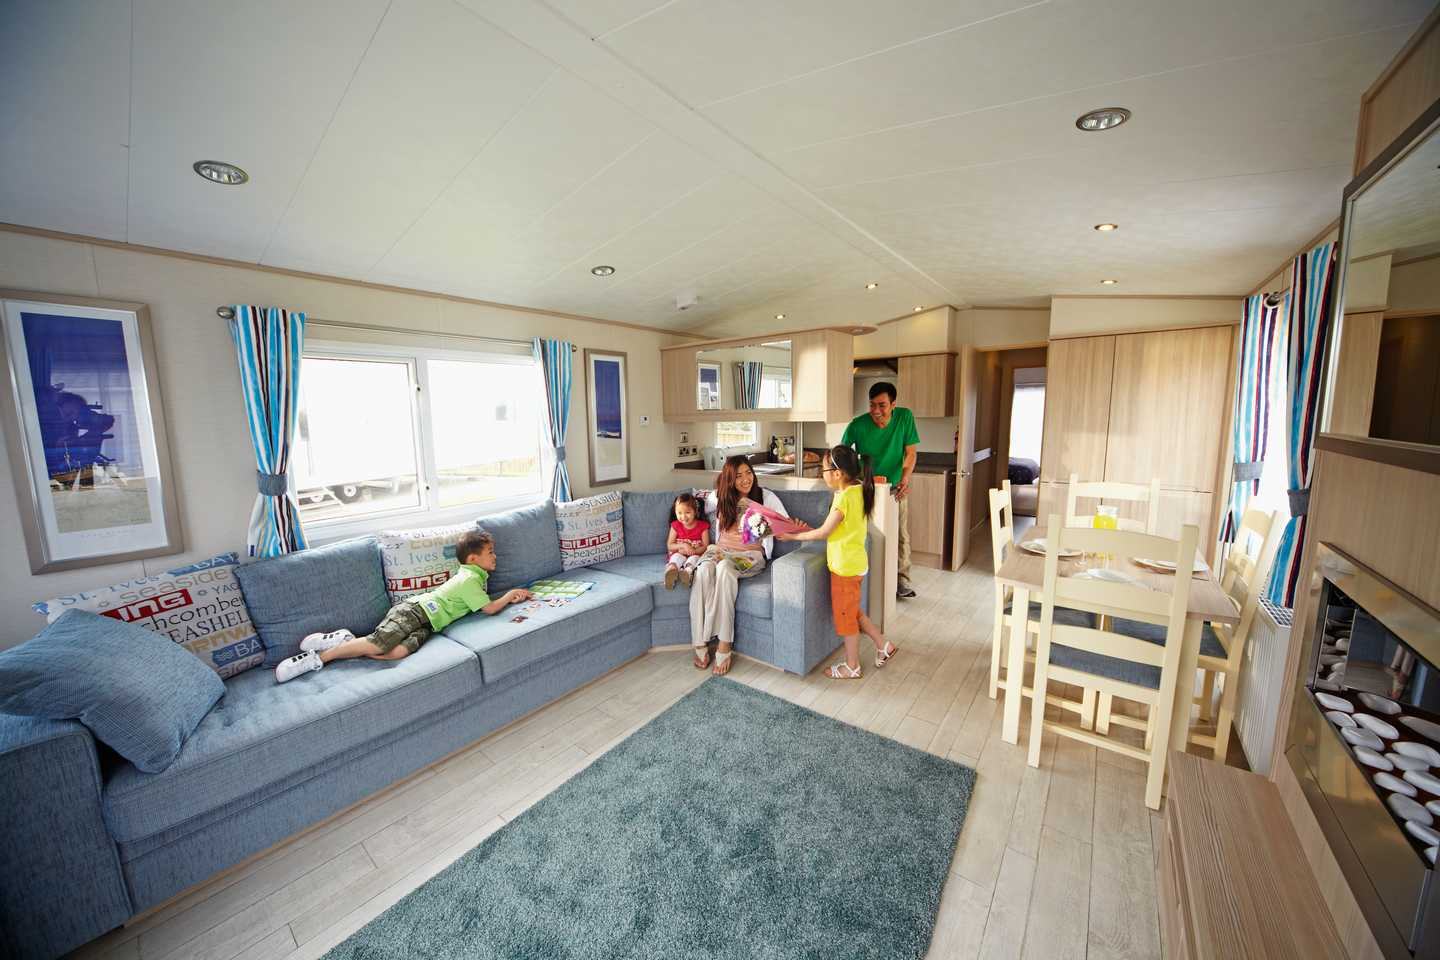 A family relaxing in a Prestige caravan